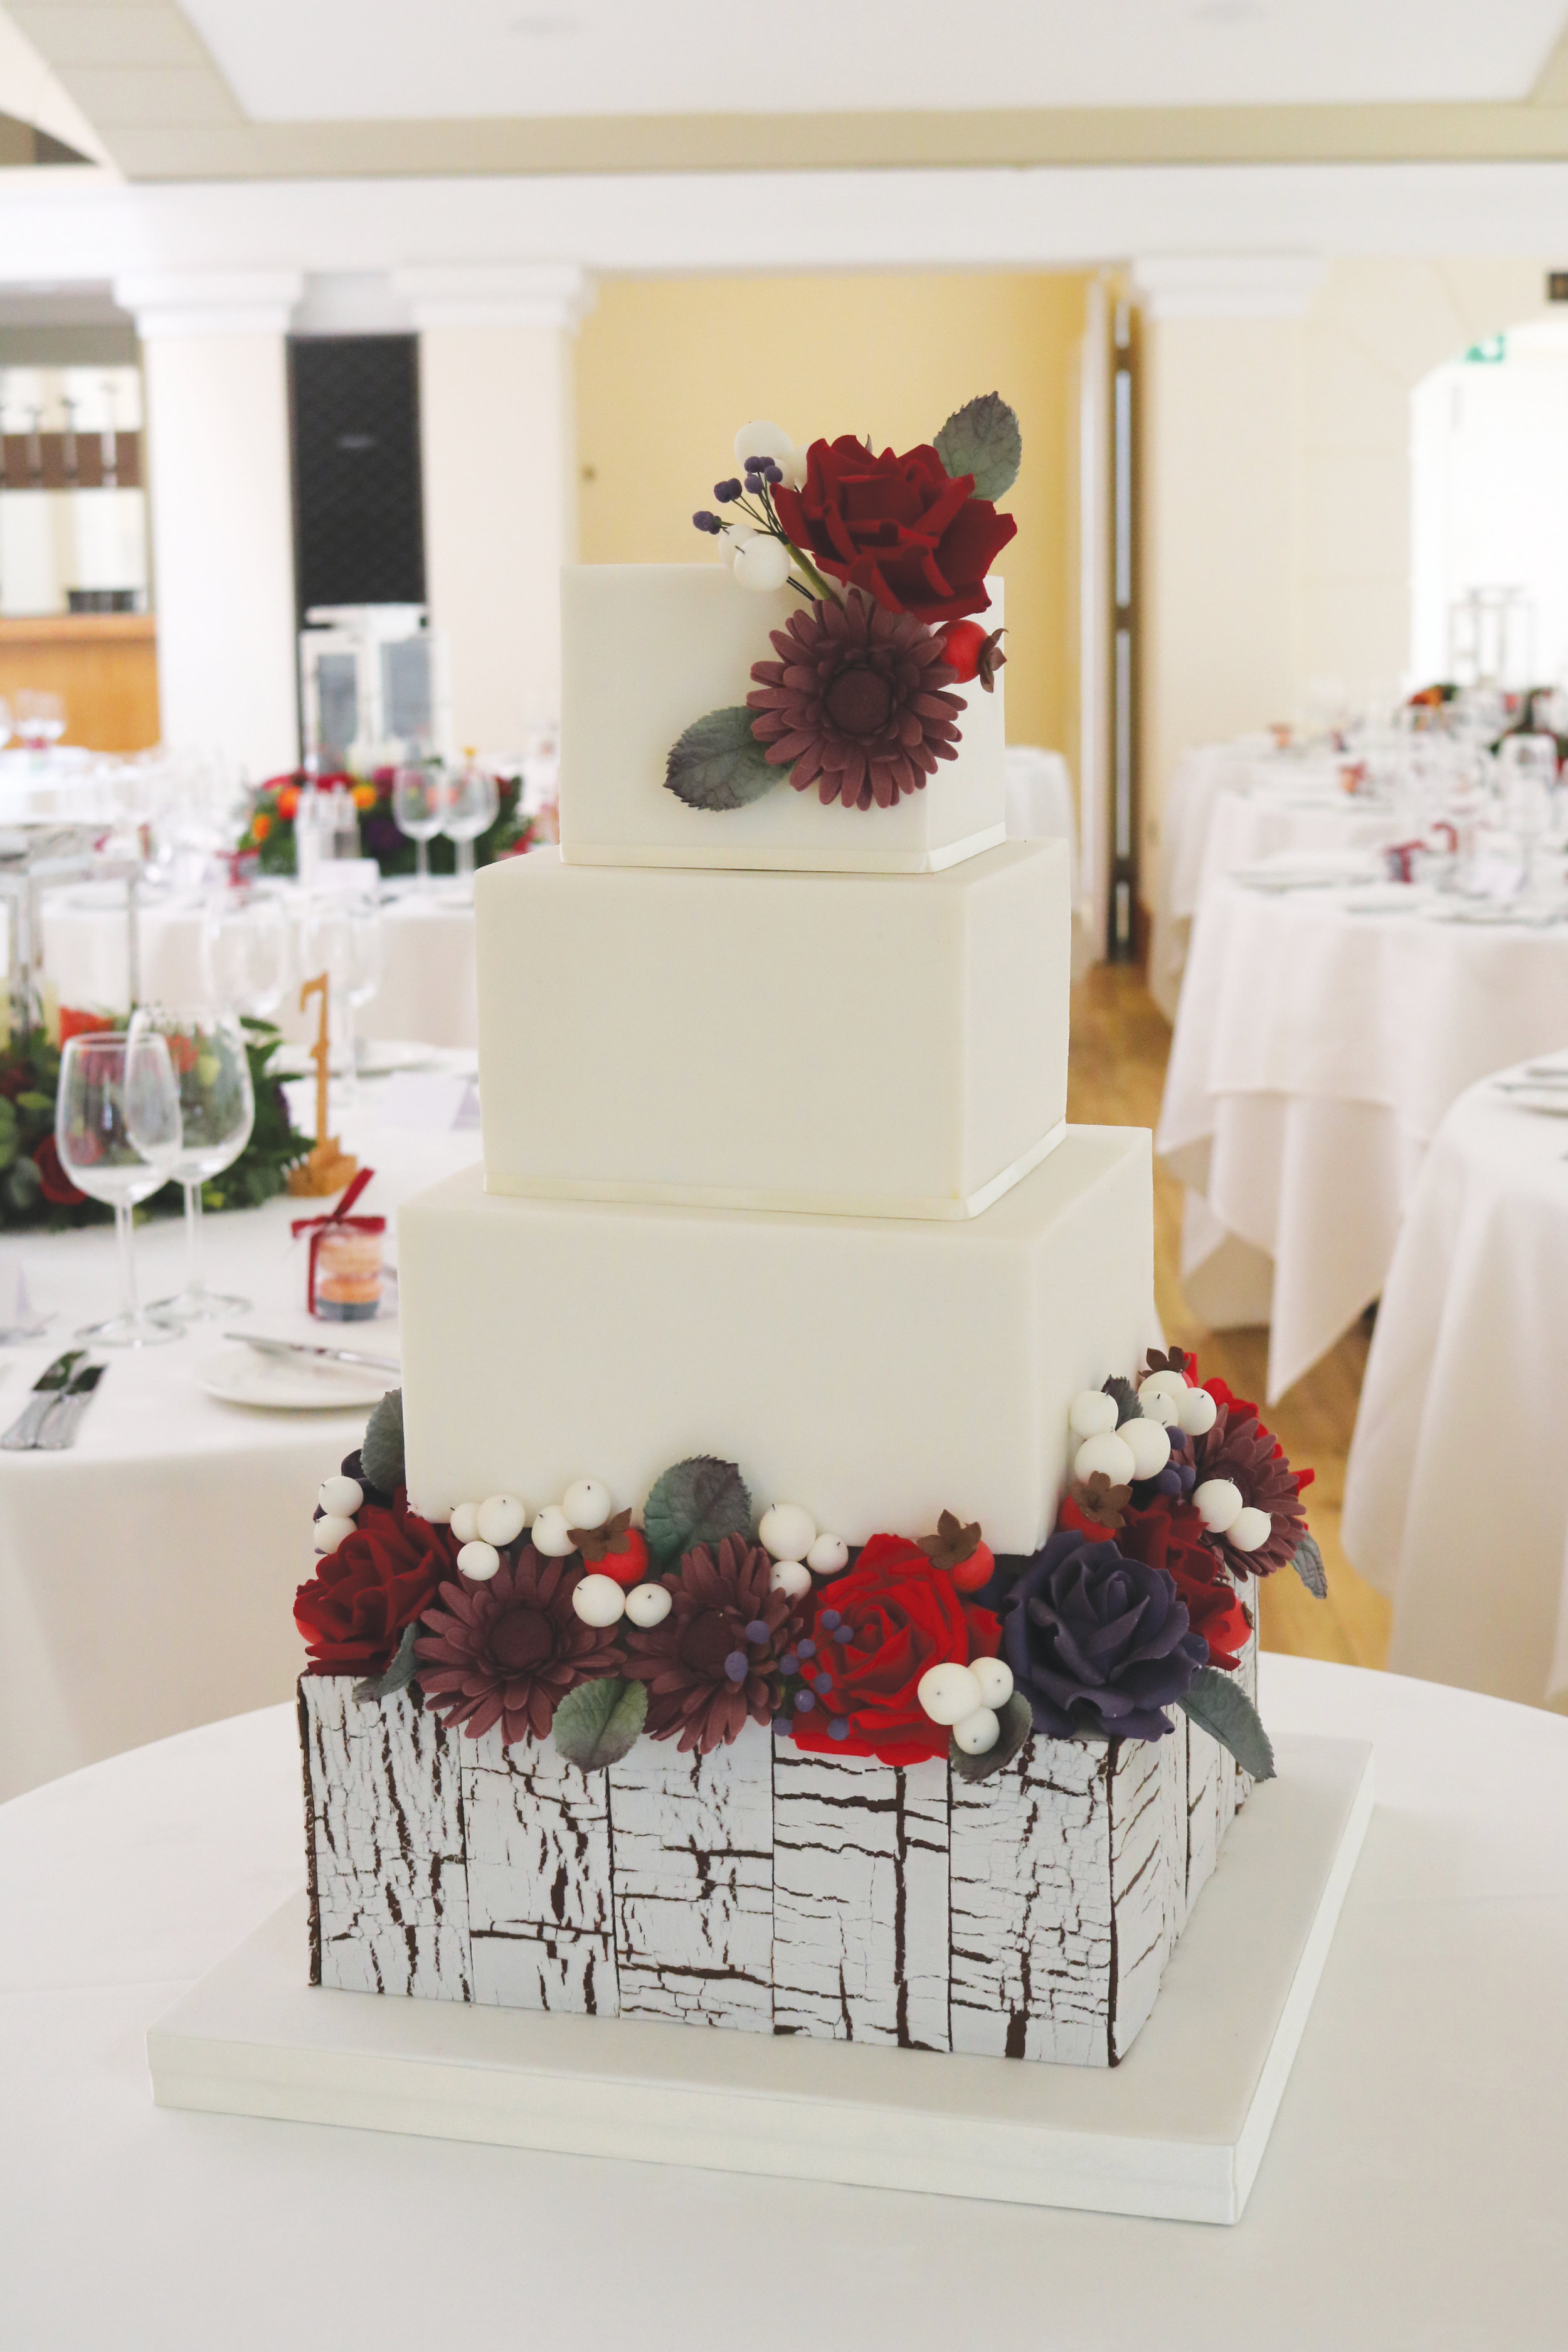 A wedding cake with painted distressed wood effect tier with sugar flowers